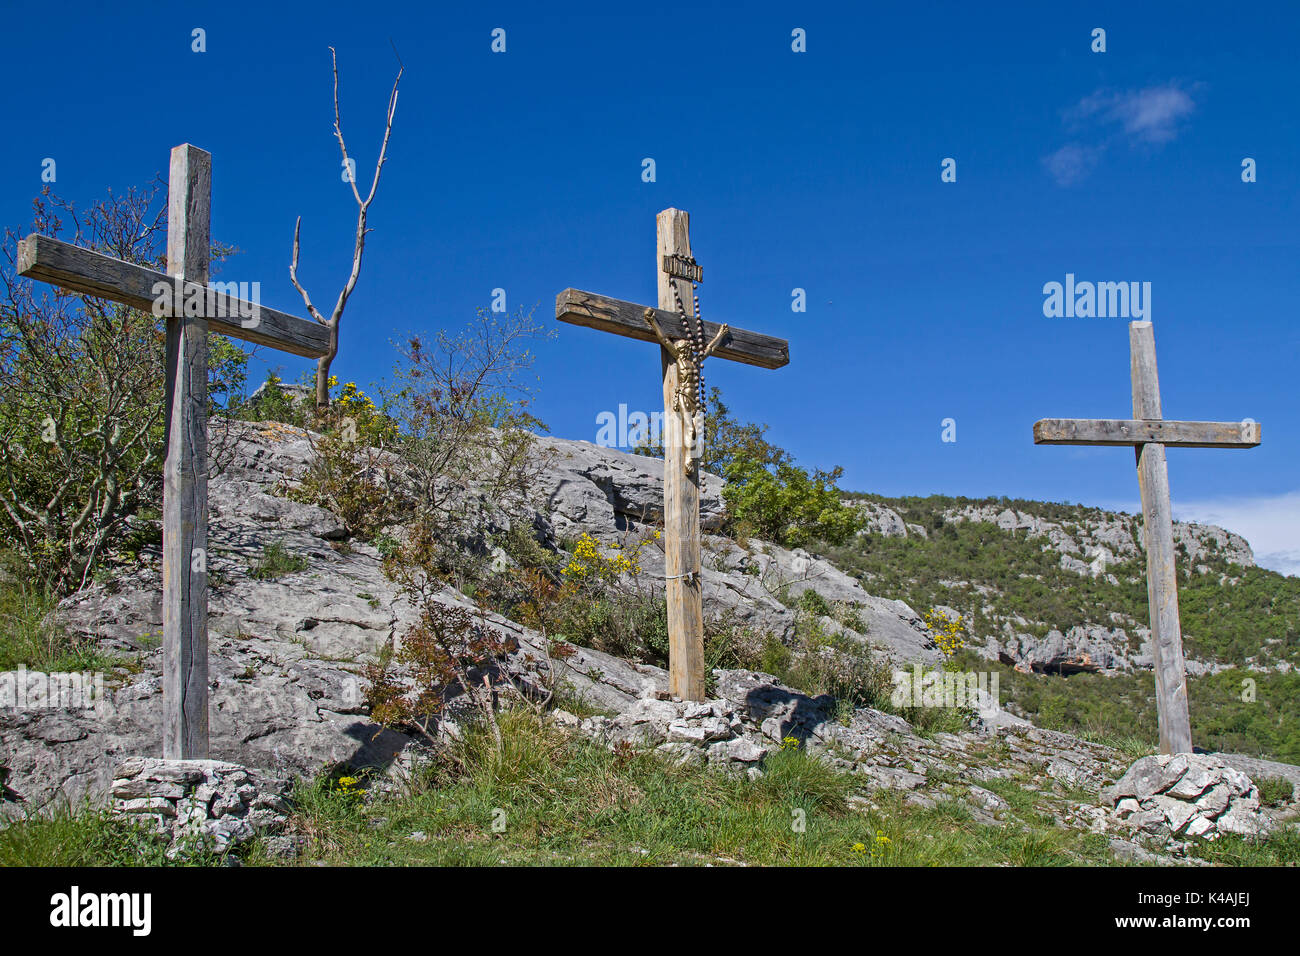 Calvary In Istarske Toplice In The Inland Of The Istrian Peninsula - Stock Image